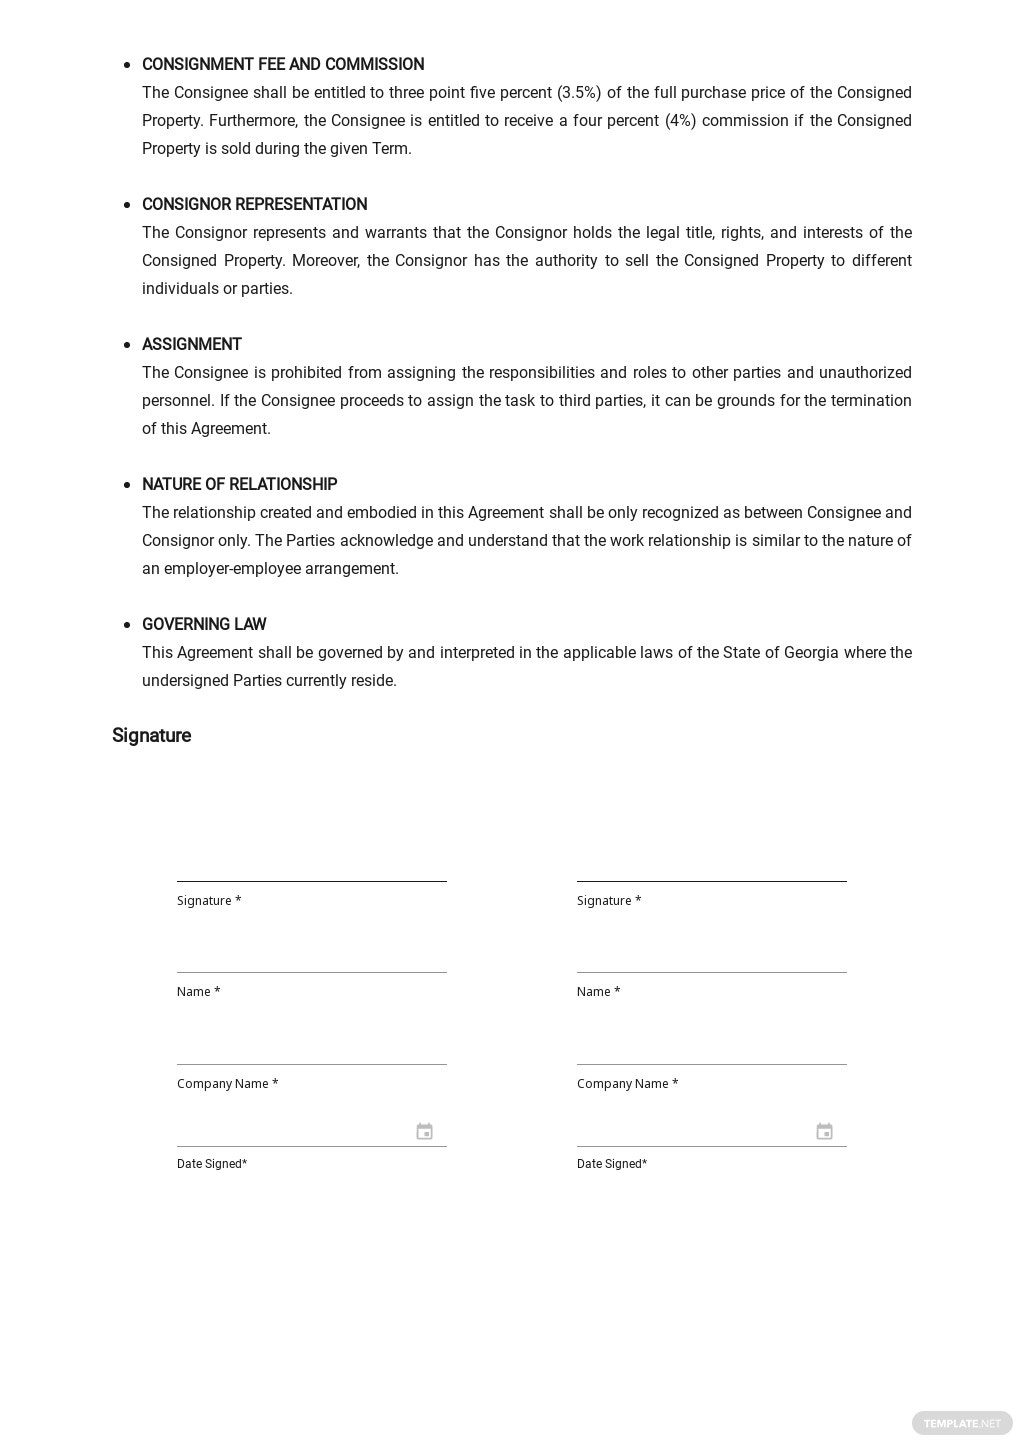 Simple Consignment Agreement Template 2.jpe